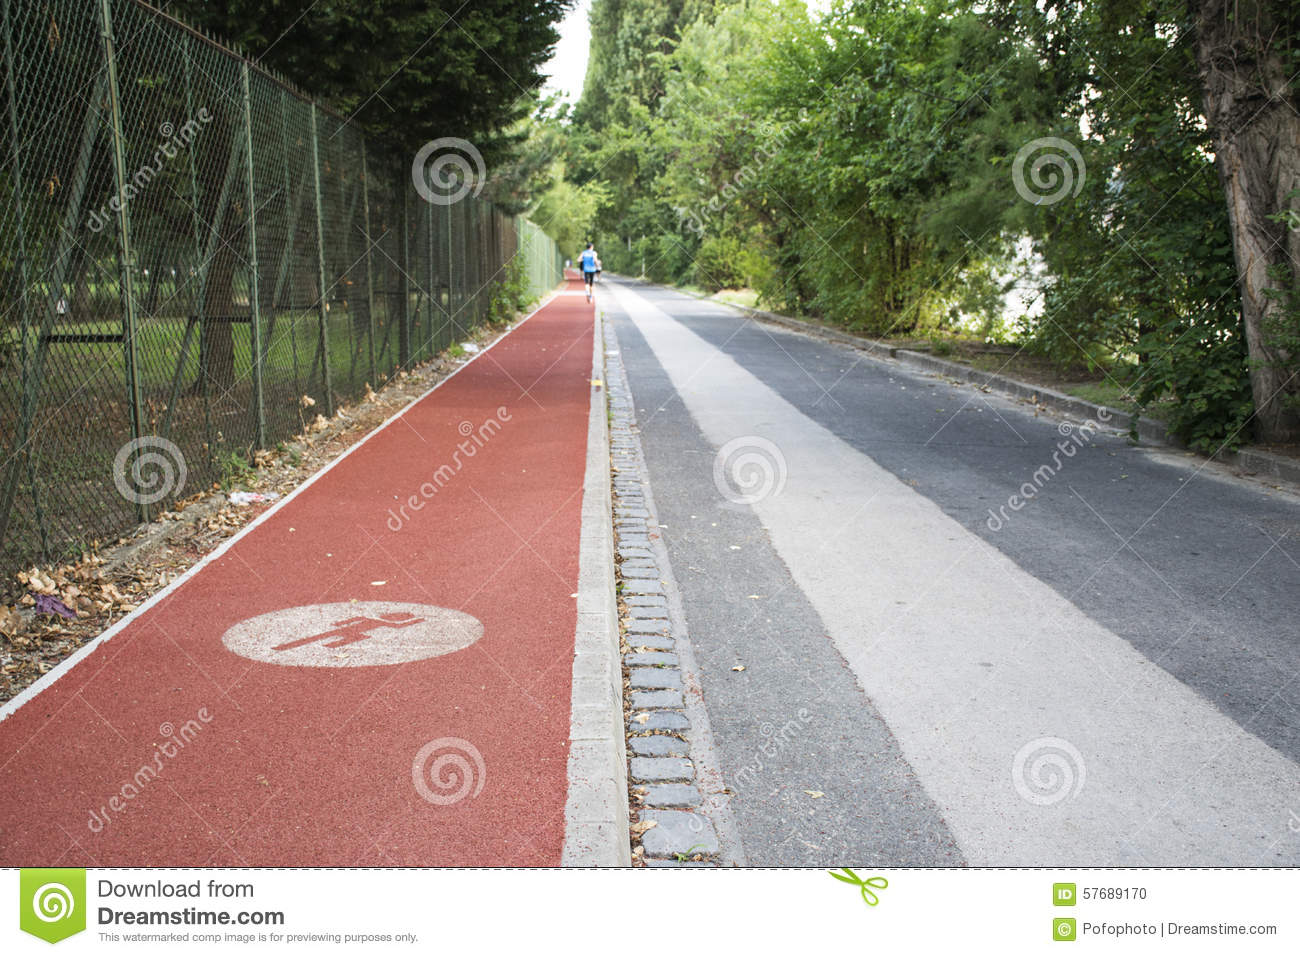 RUNNING TRACK IN THE CITY PARK